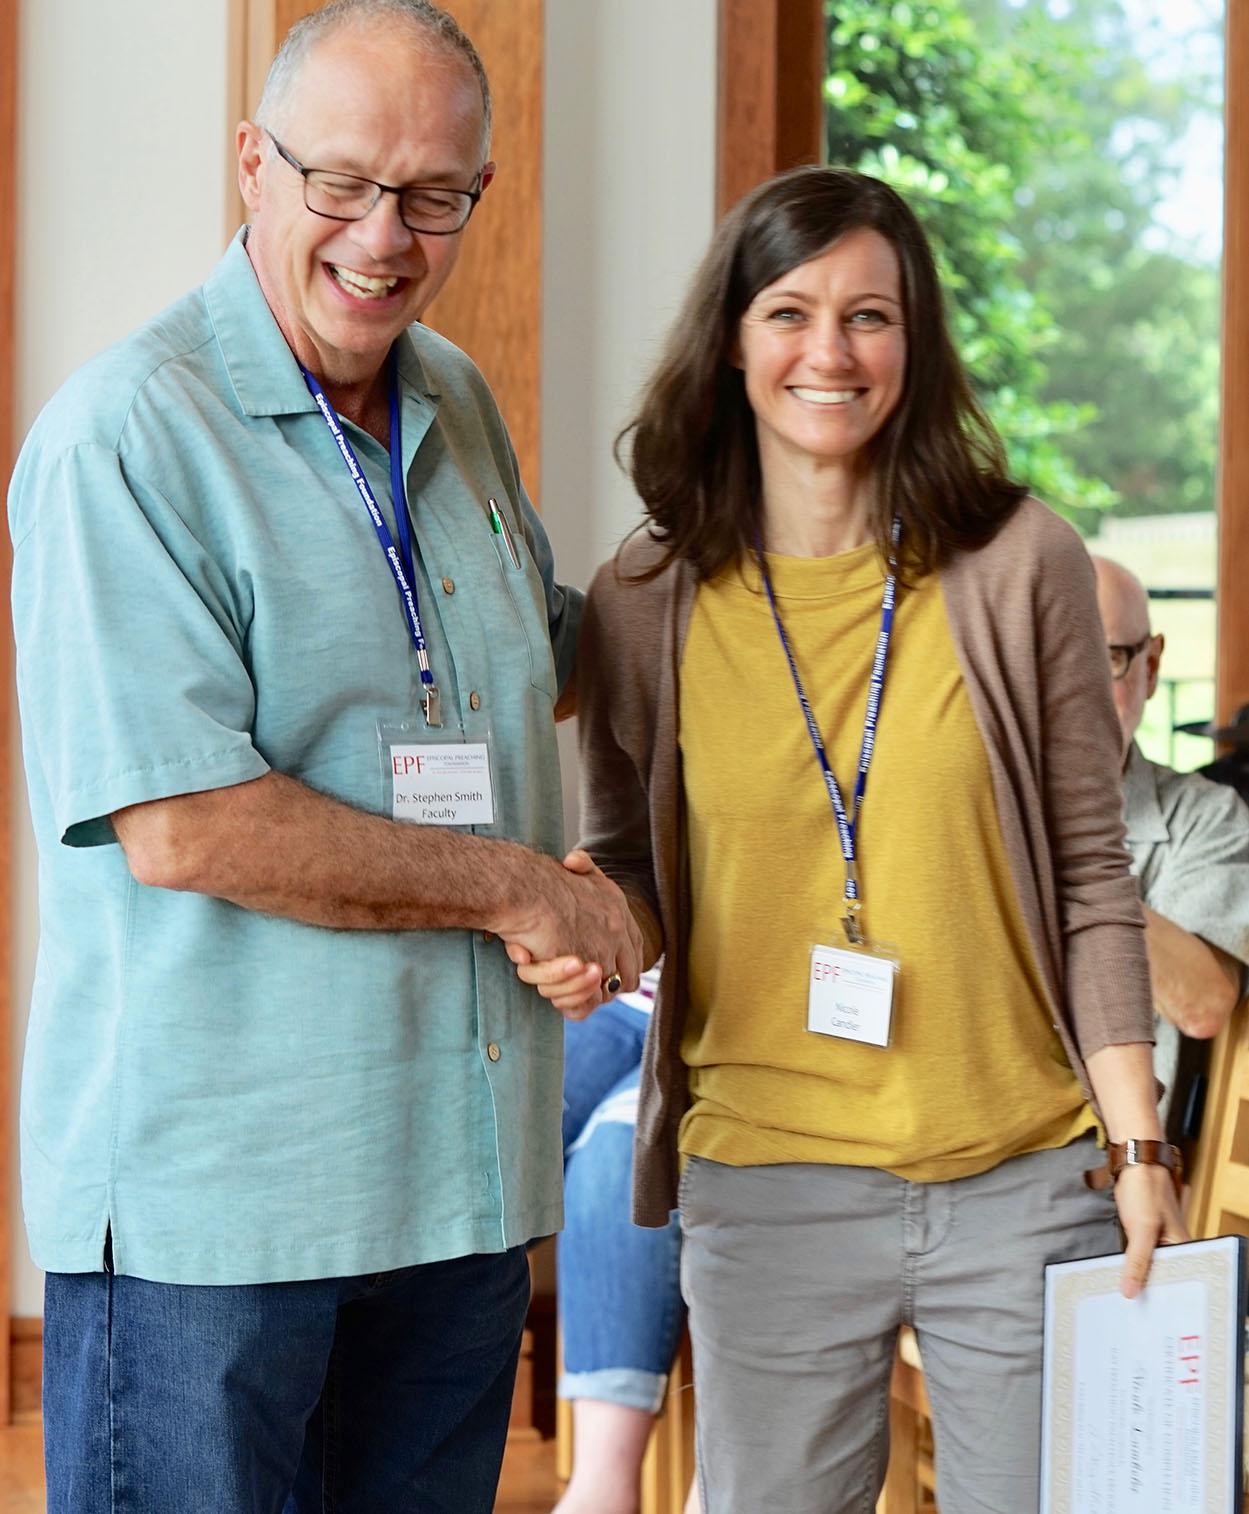 Dr. Stephen Smith (faculty) and Nicole Lambelet